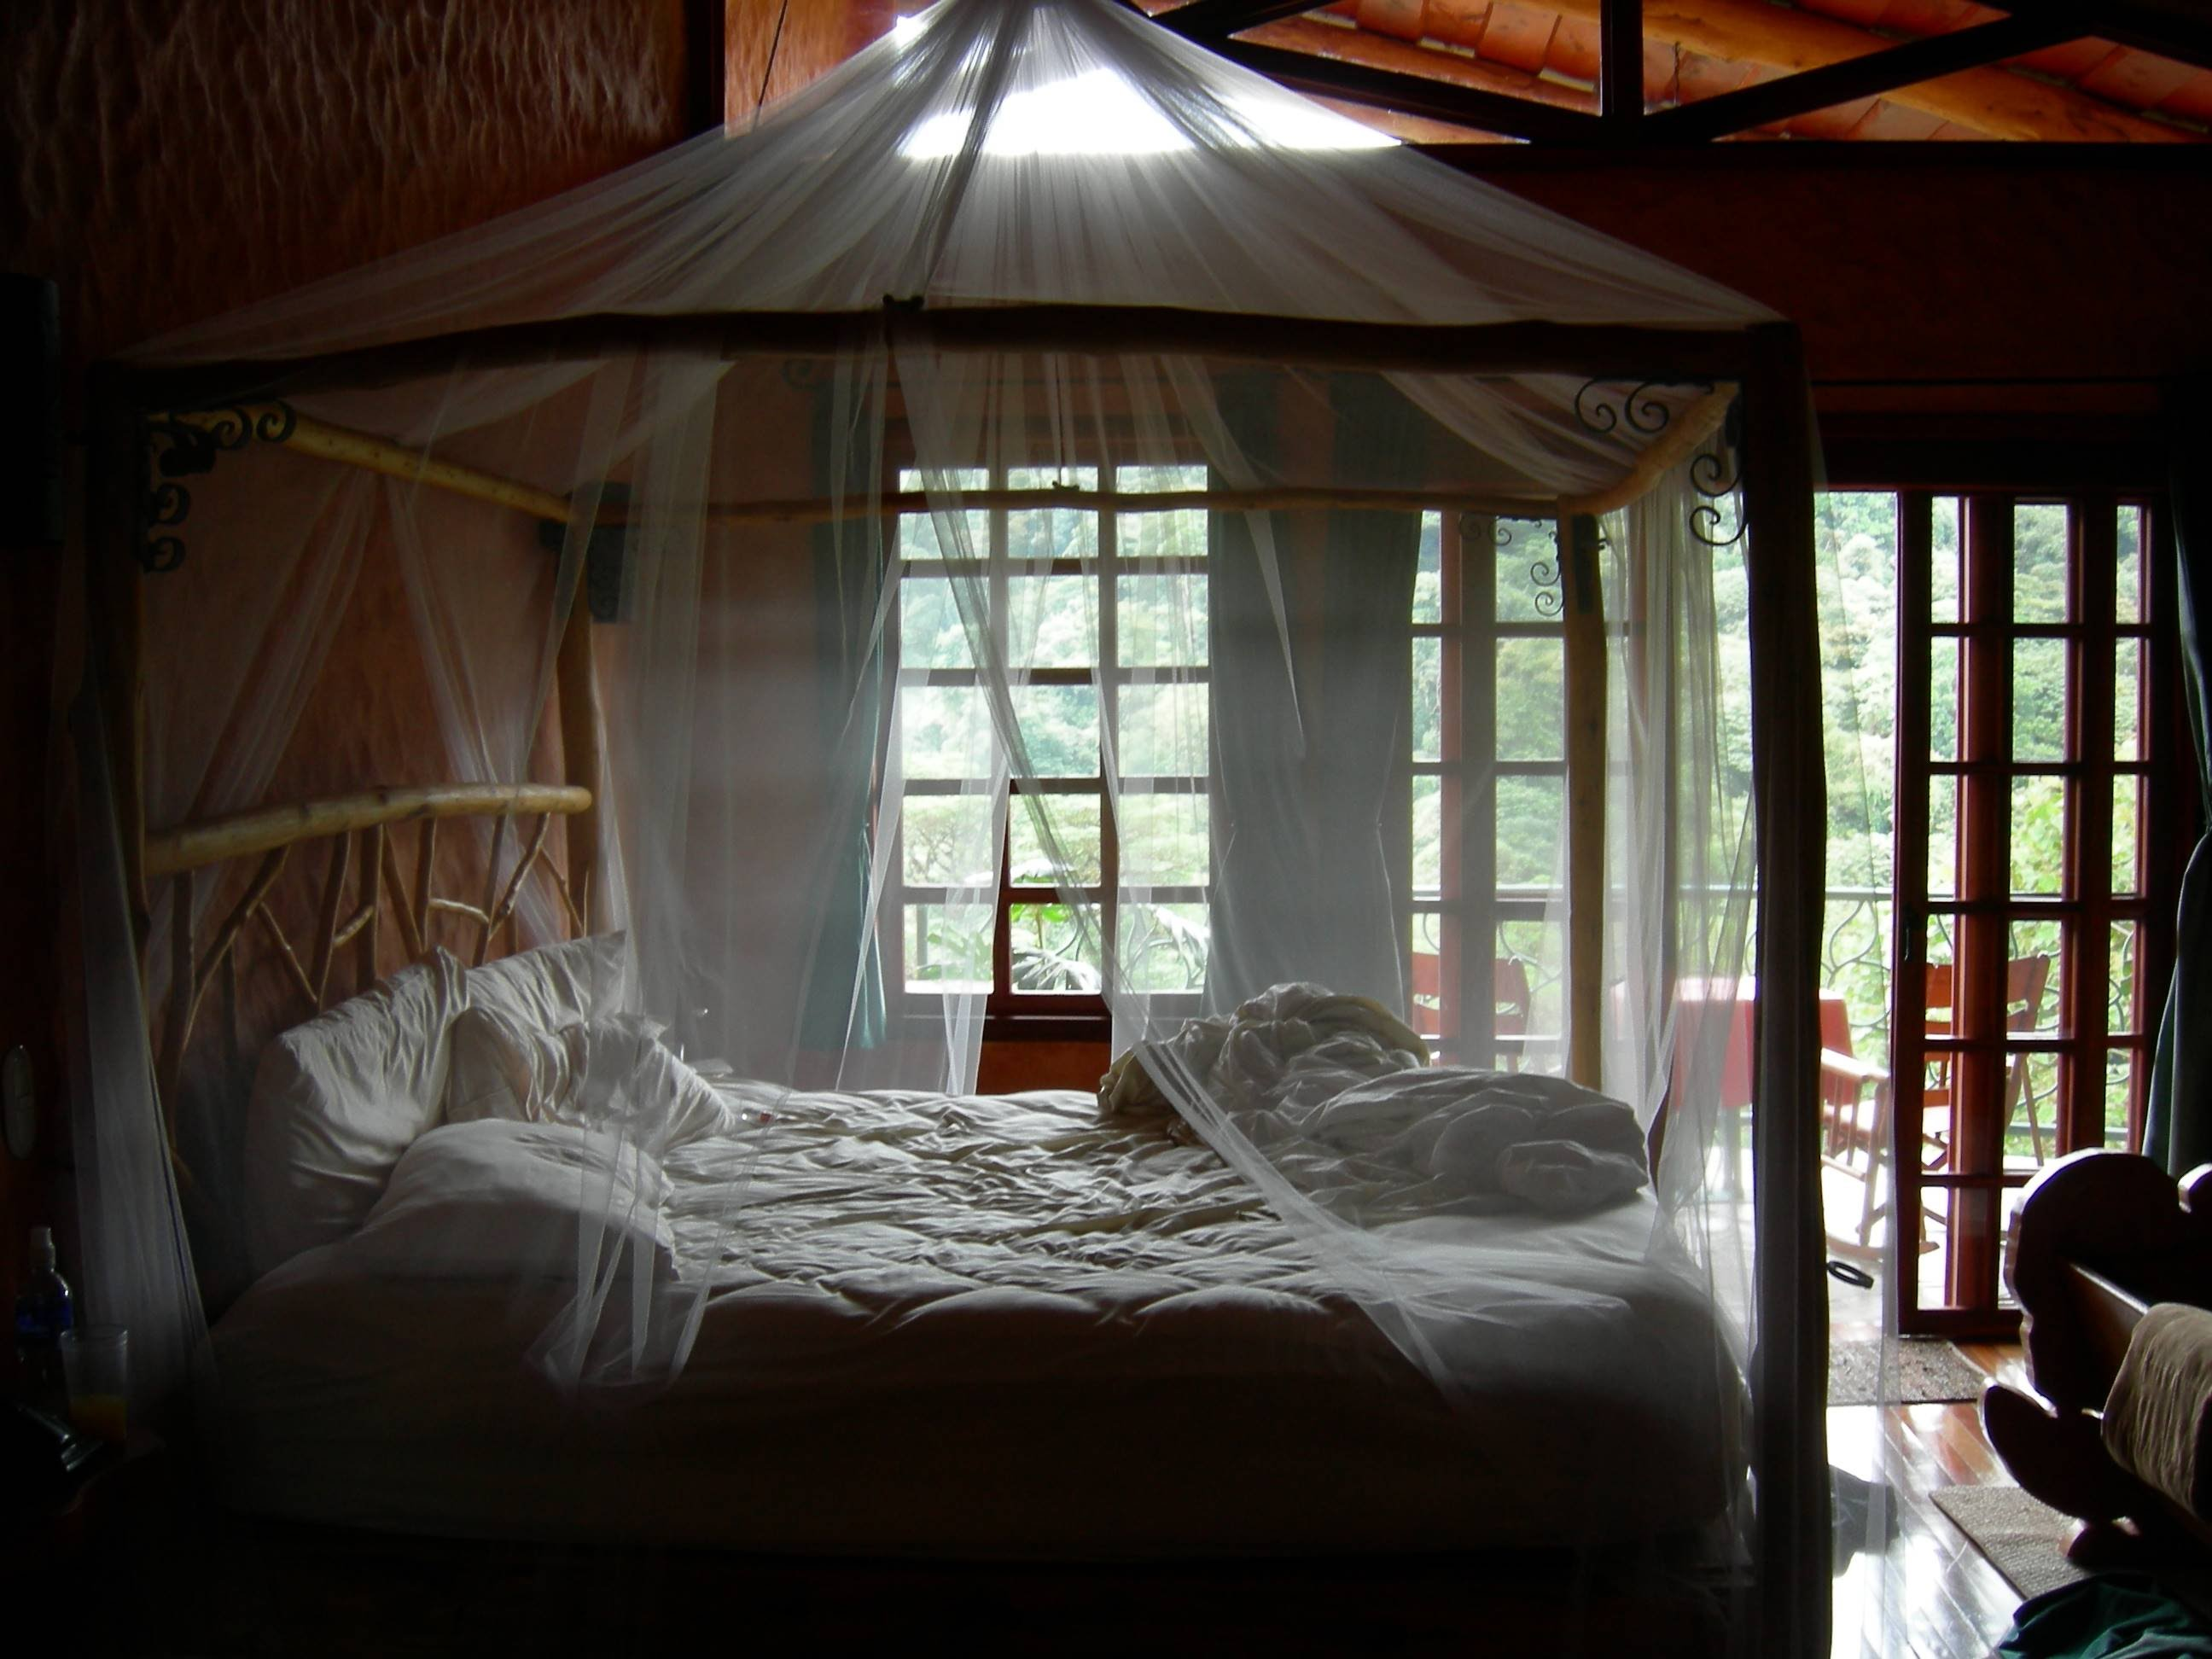 Morrowel - Awesome canopy beds ...